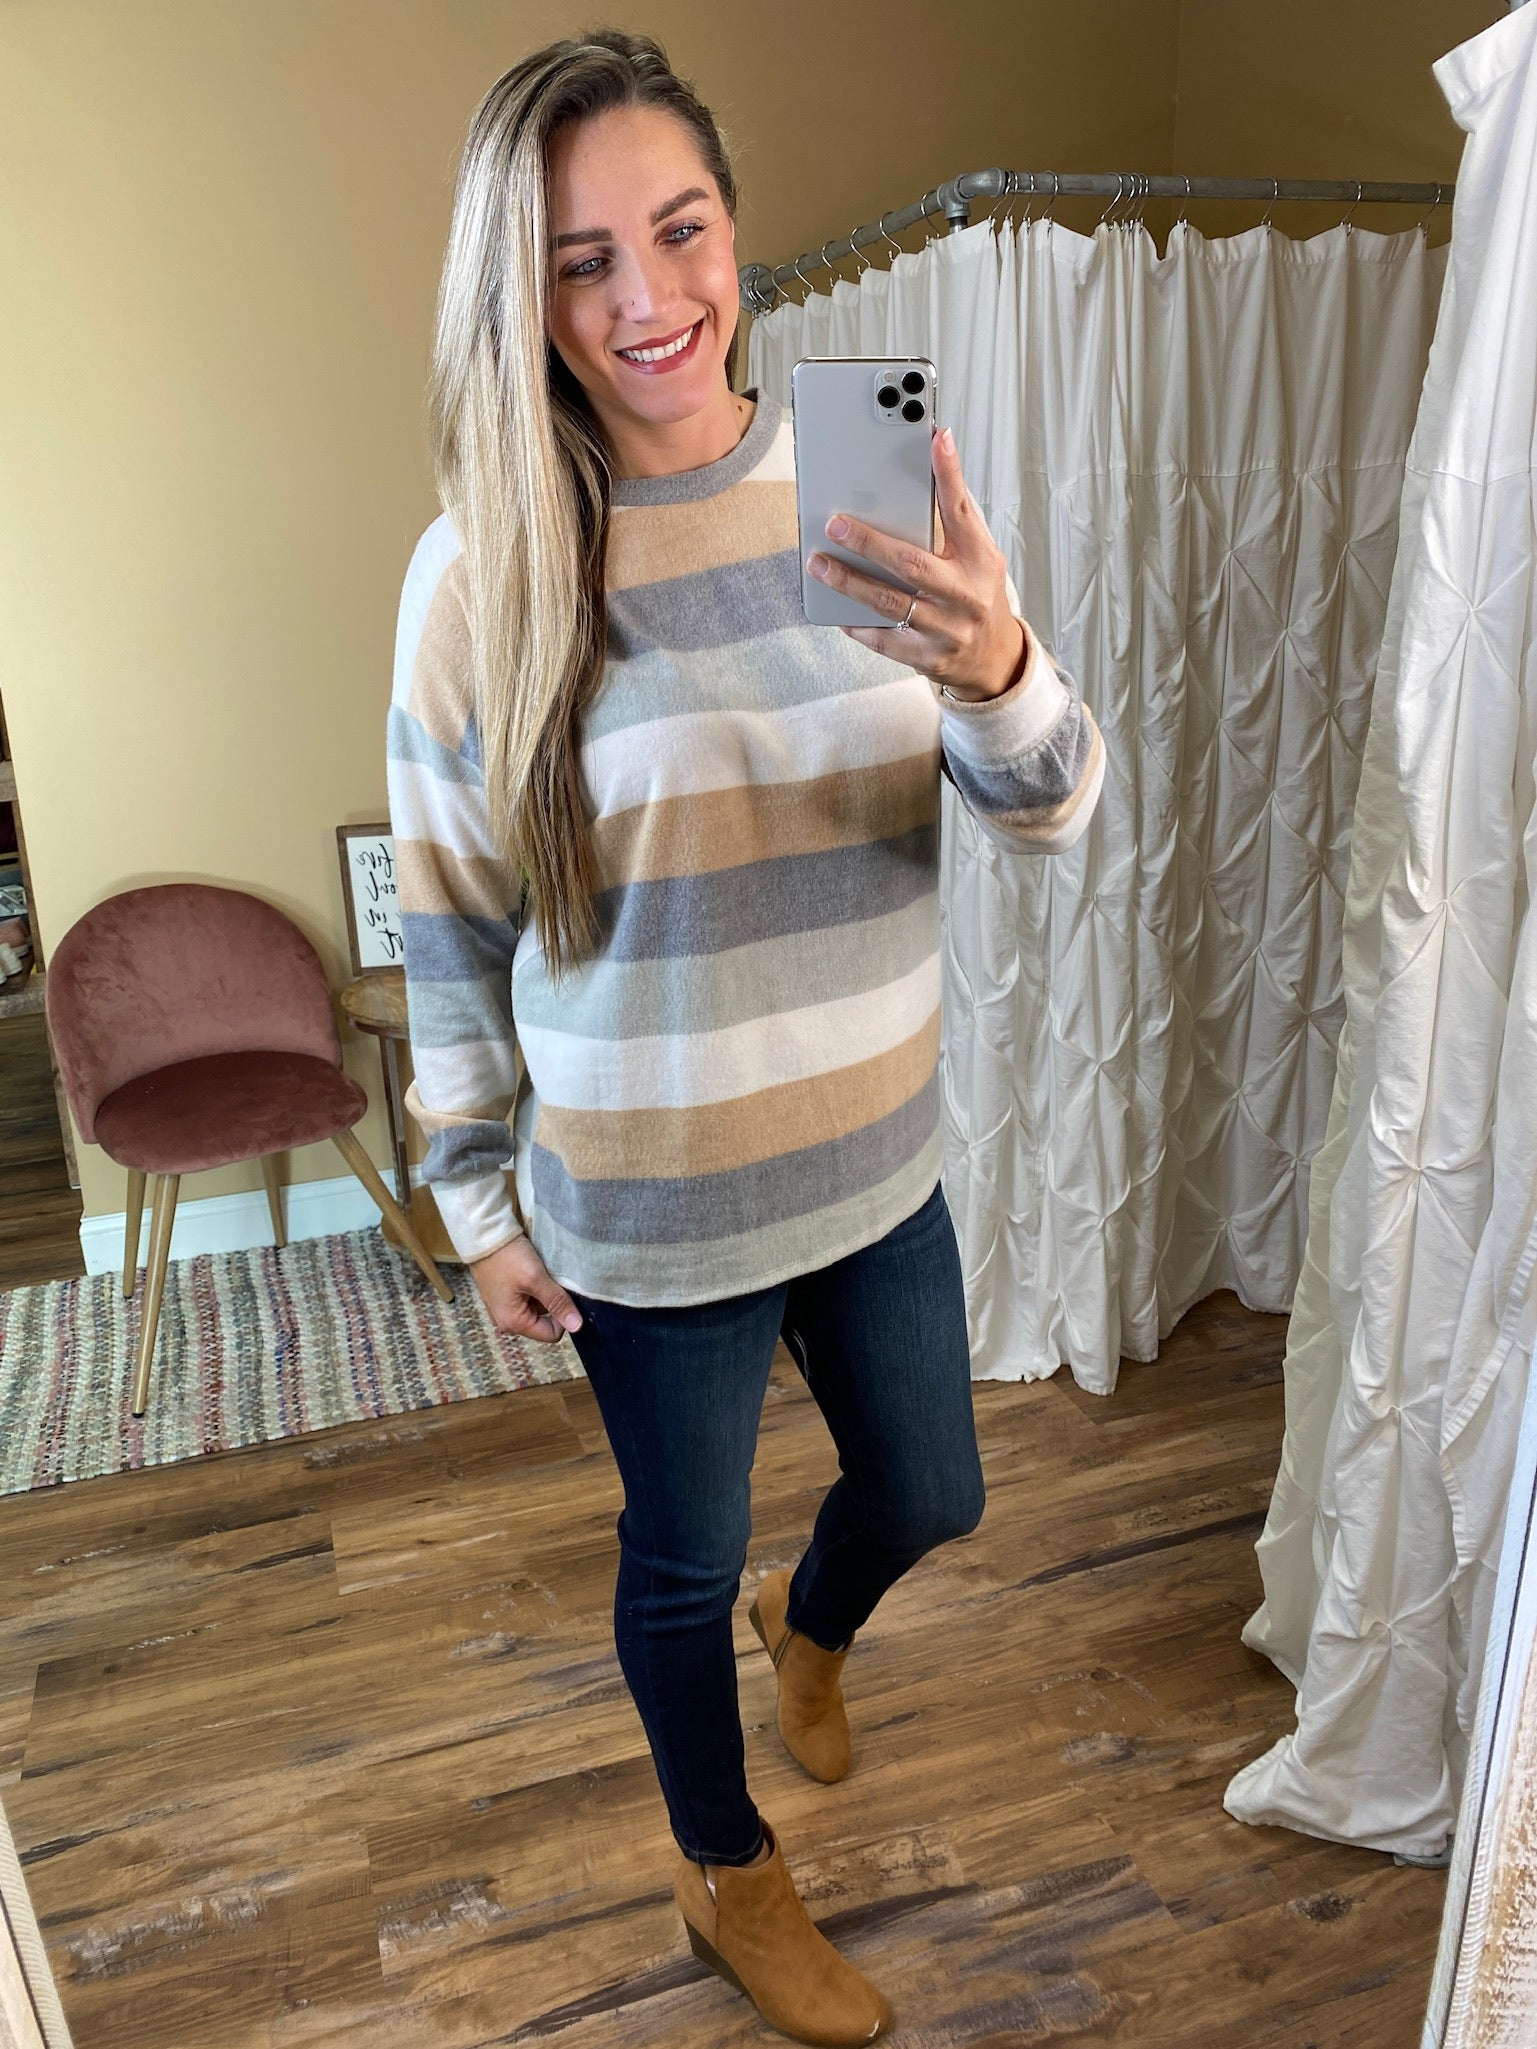 Delanie Brushed Striped Top